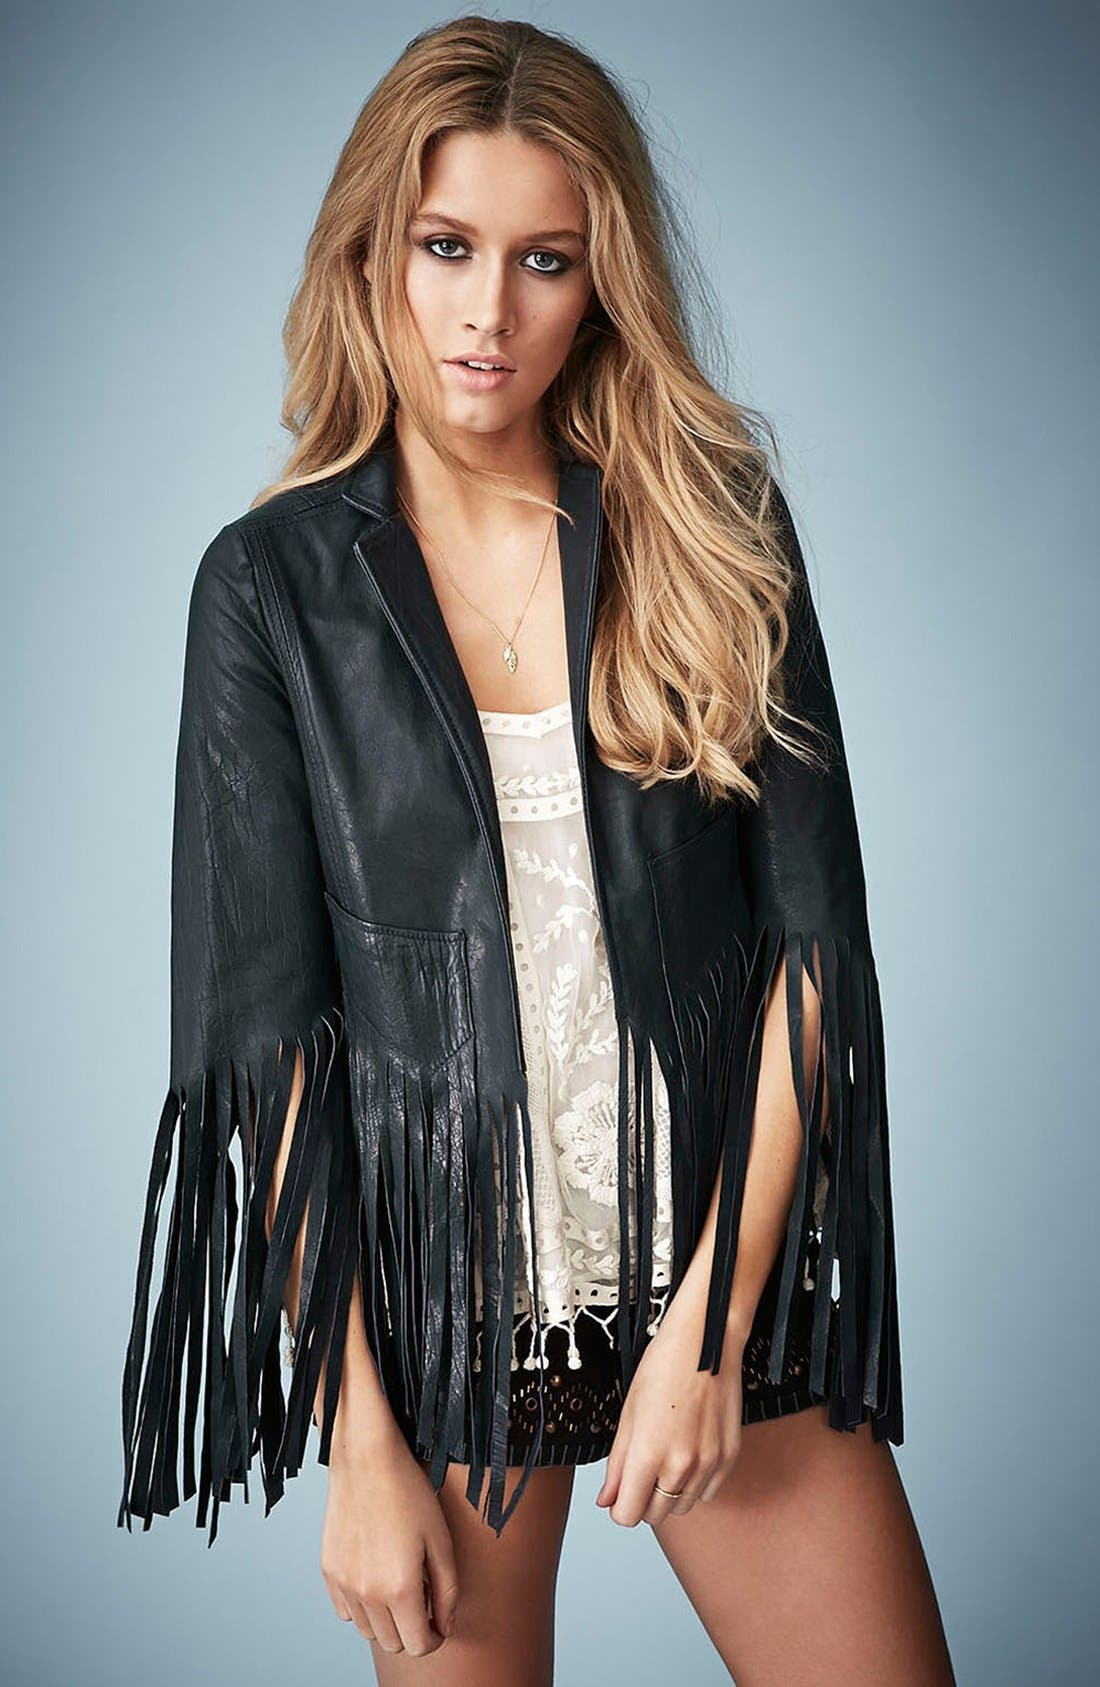 Alternate Image 1 Selected - Kate Moss for Topshop Fringed Leather Jacket